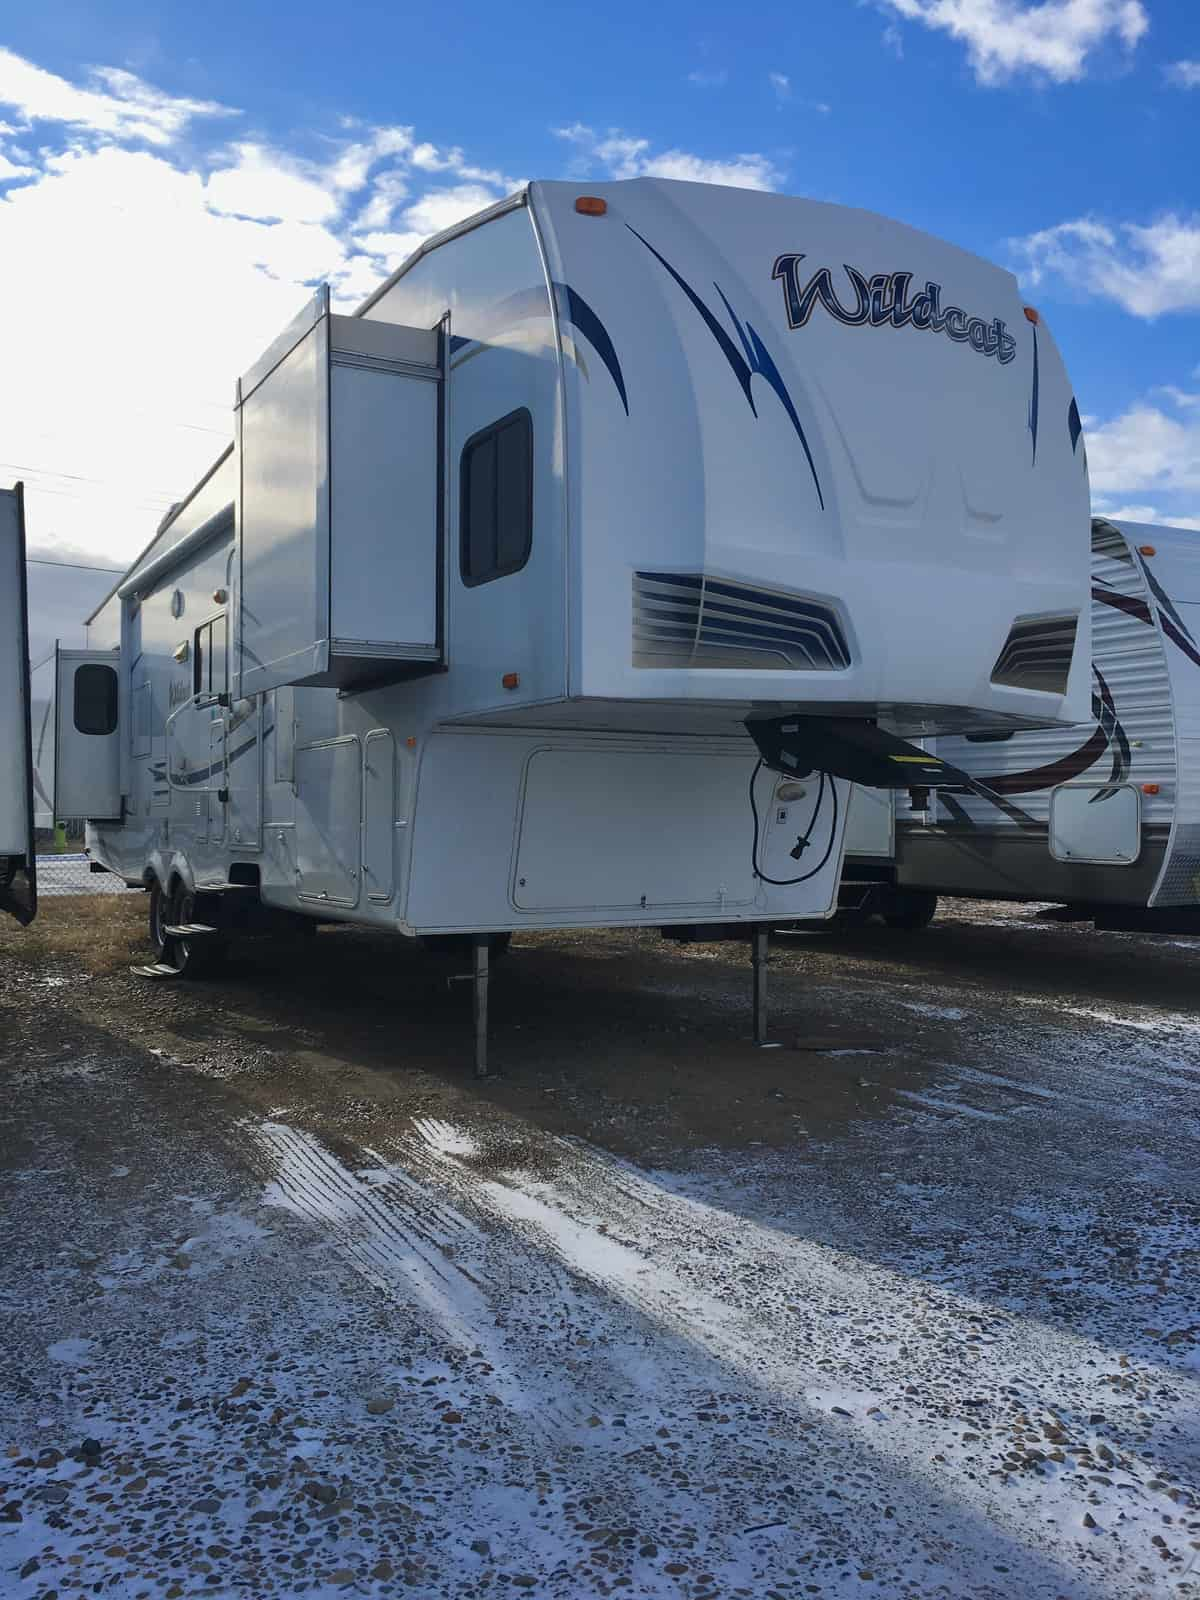 USED 2011 Forest River WILDCAT 32QBT